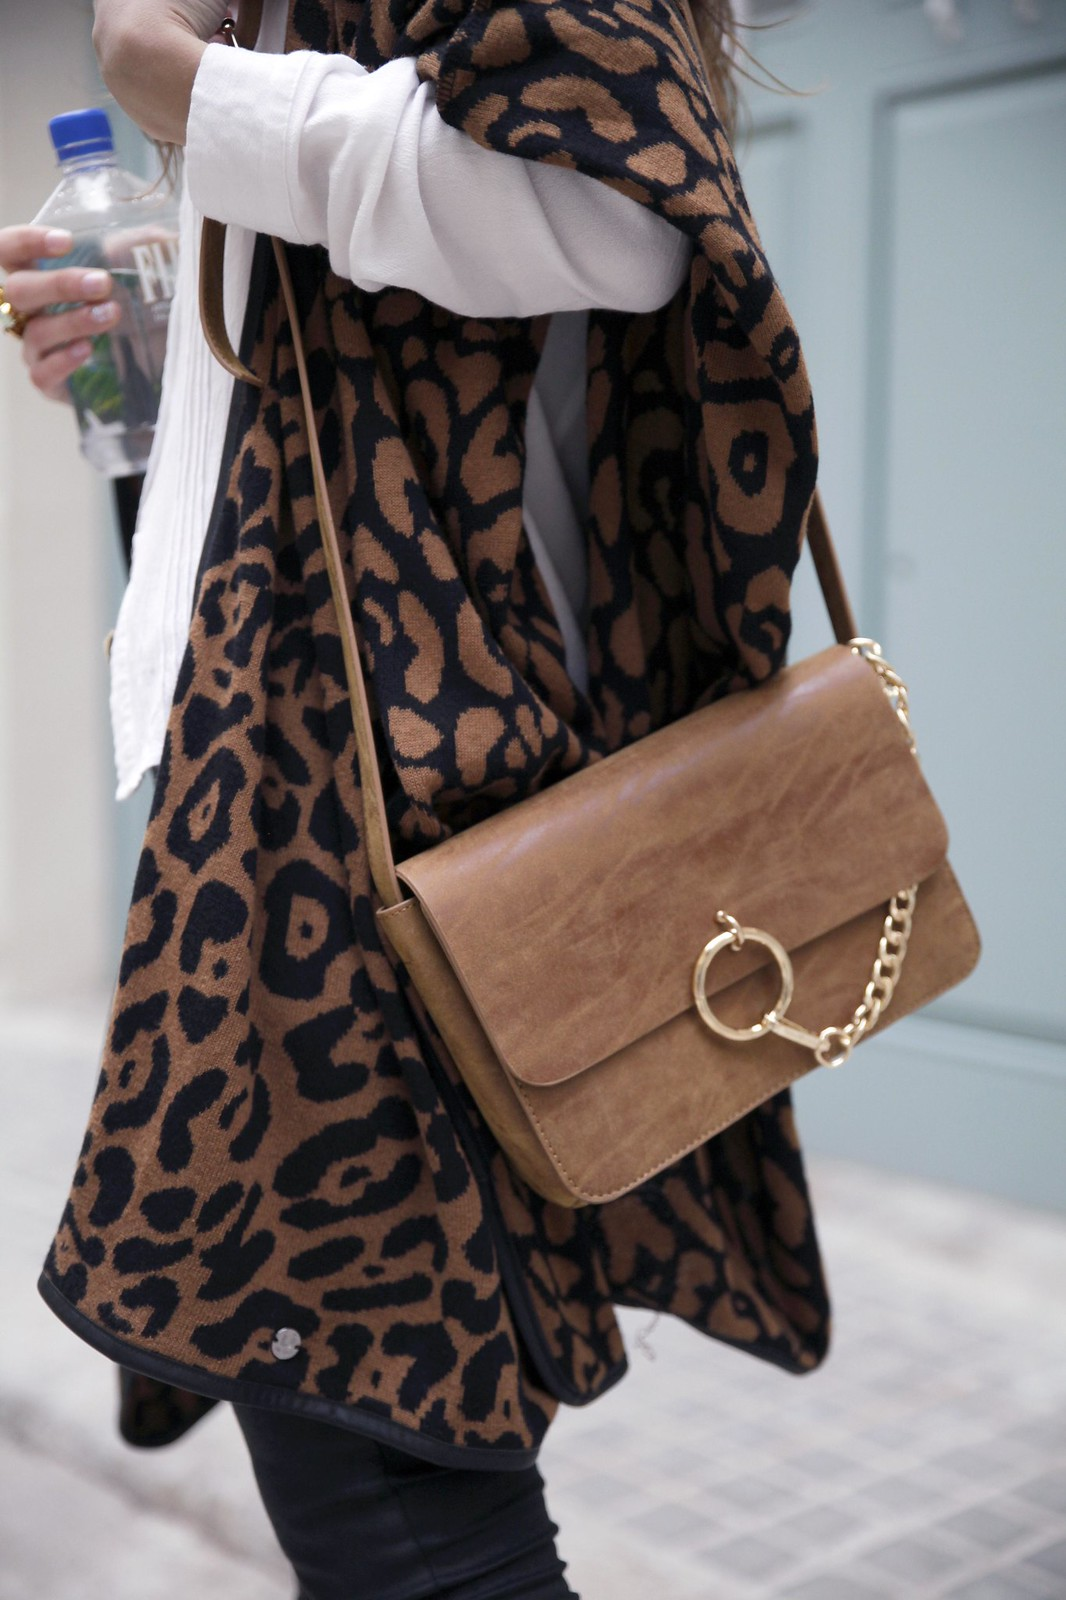 012_leopard_casual_look_with_ruga_theguestgirl_influencer_fashion_portugal_barcelona